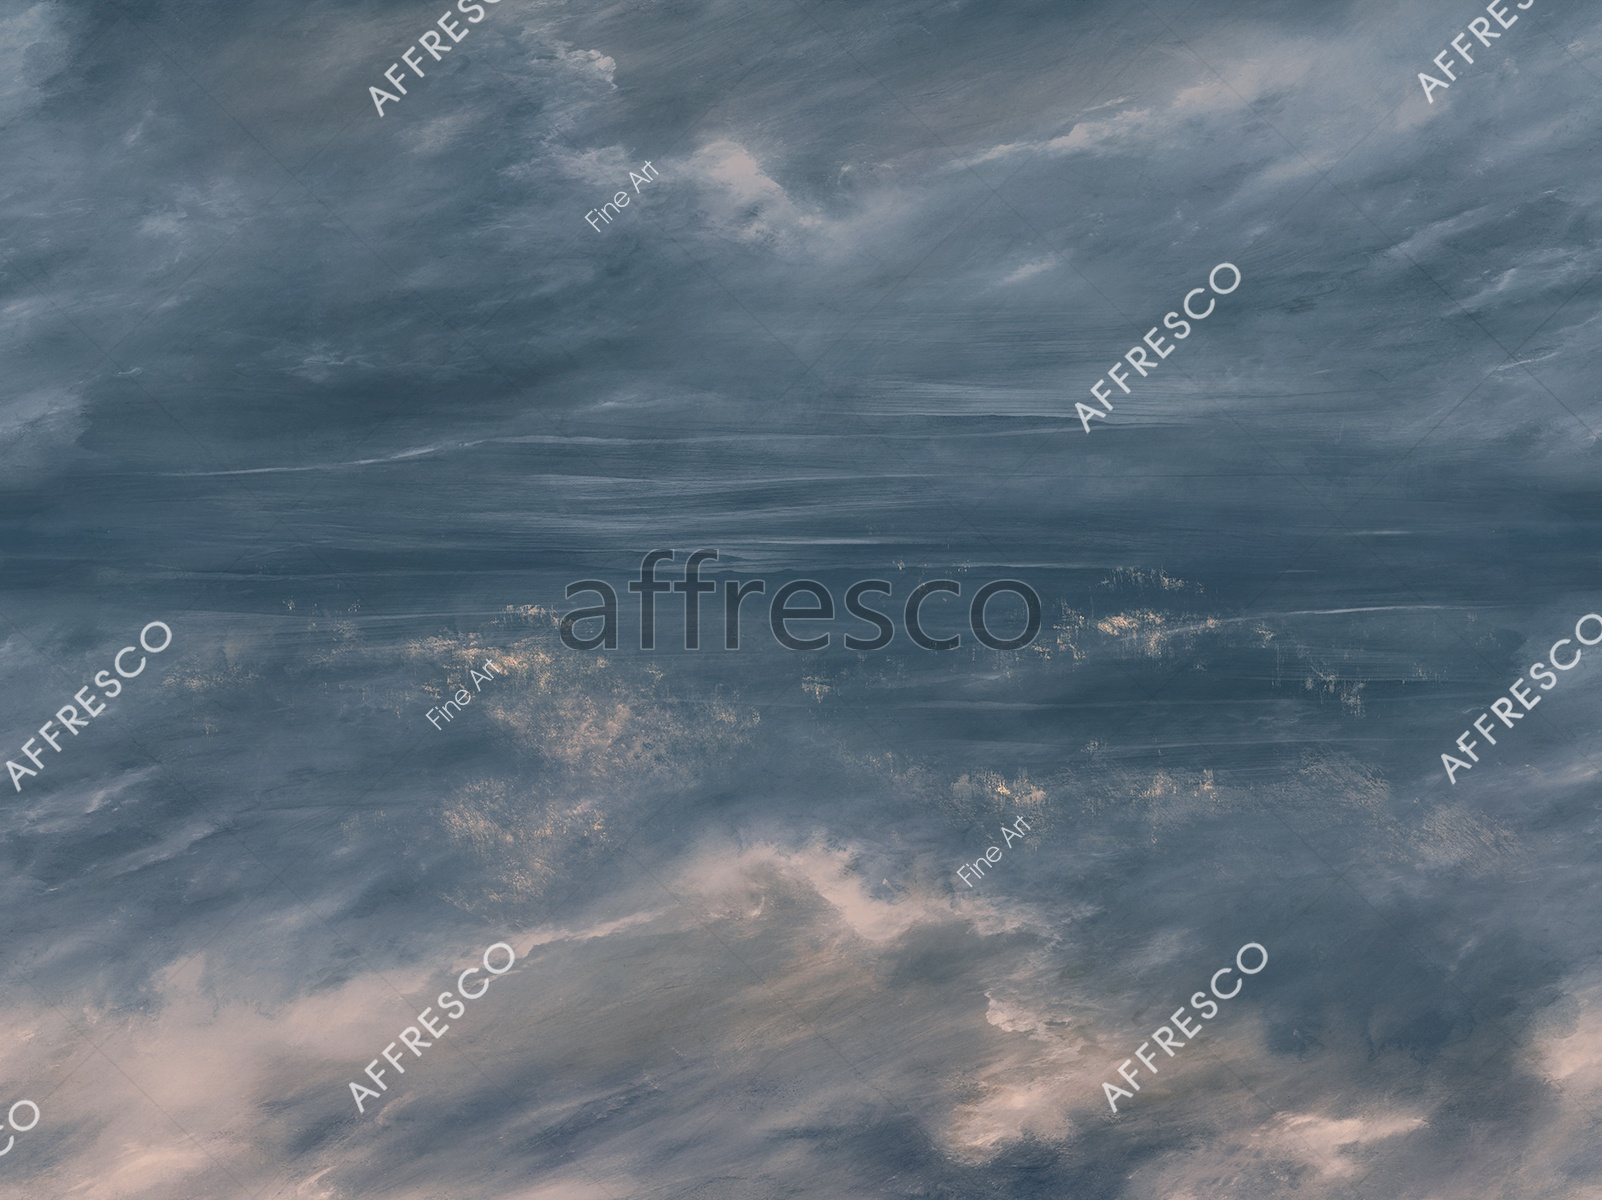 RE894-COL2 | Fine Art | Affresco Factory